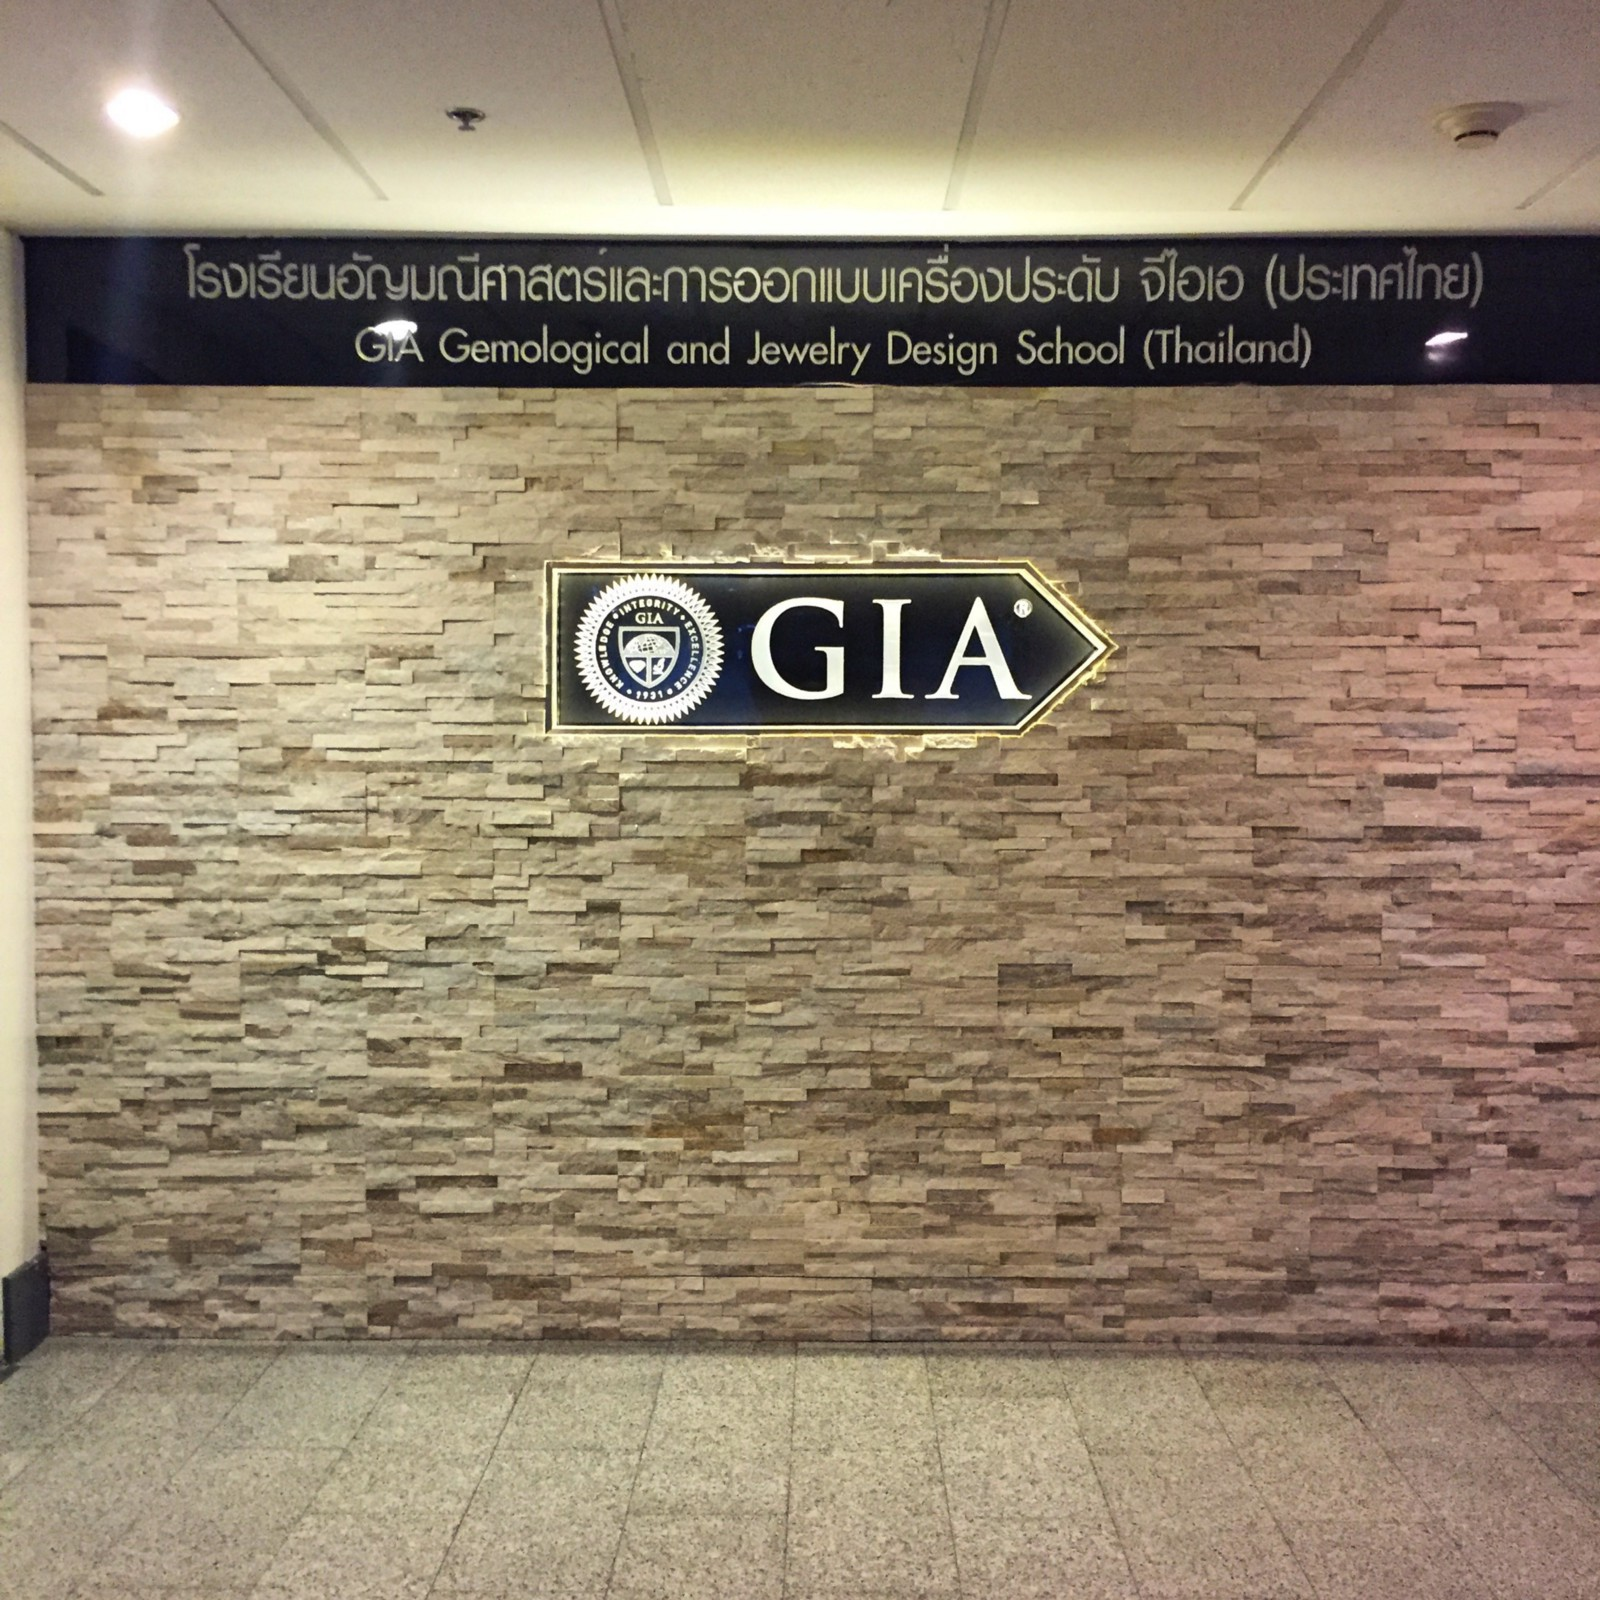 How do you know the results of the GIA